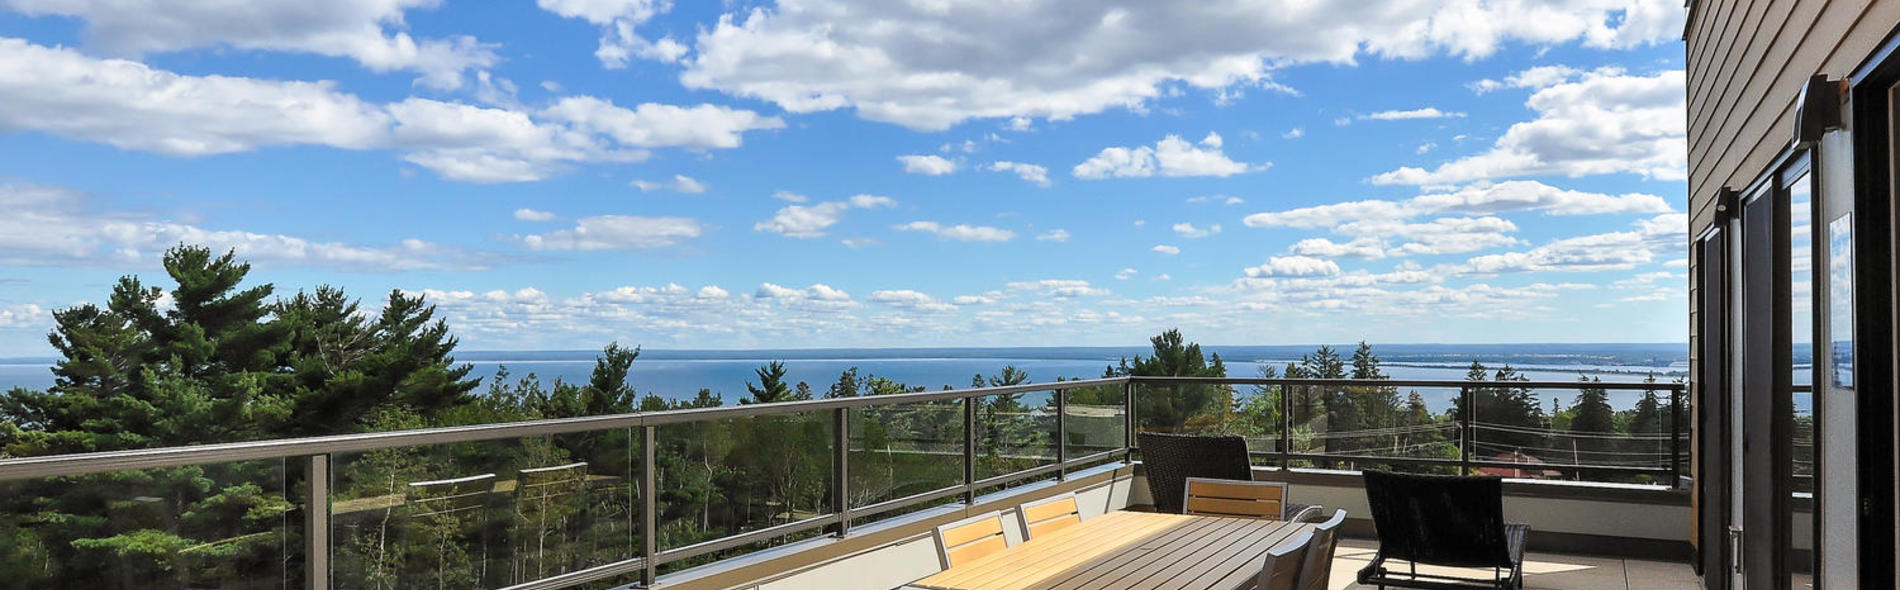 Apartments For Rent In Duluth Mn Bluestone Lofts Home